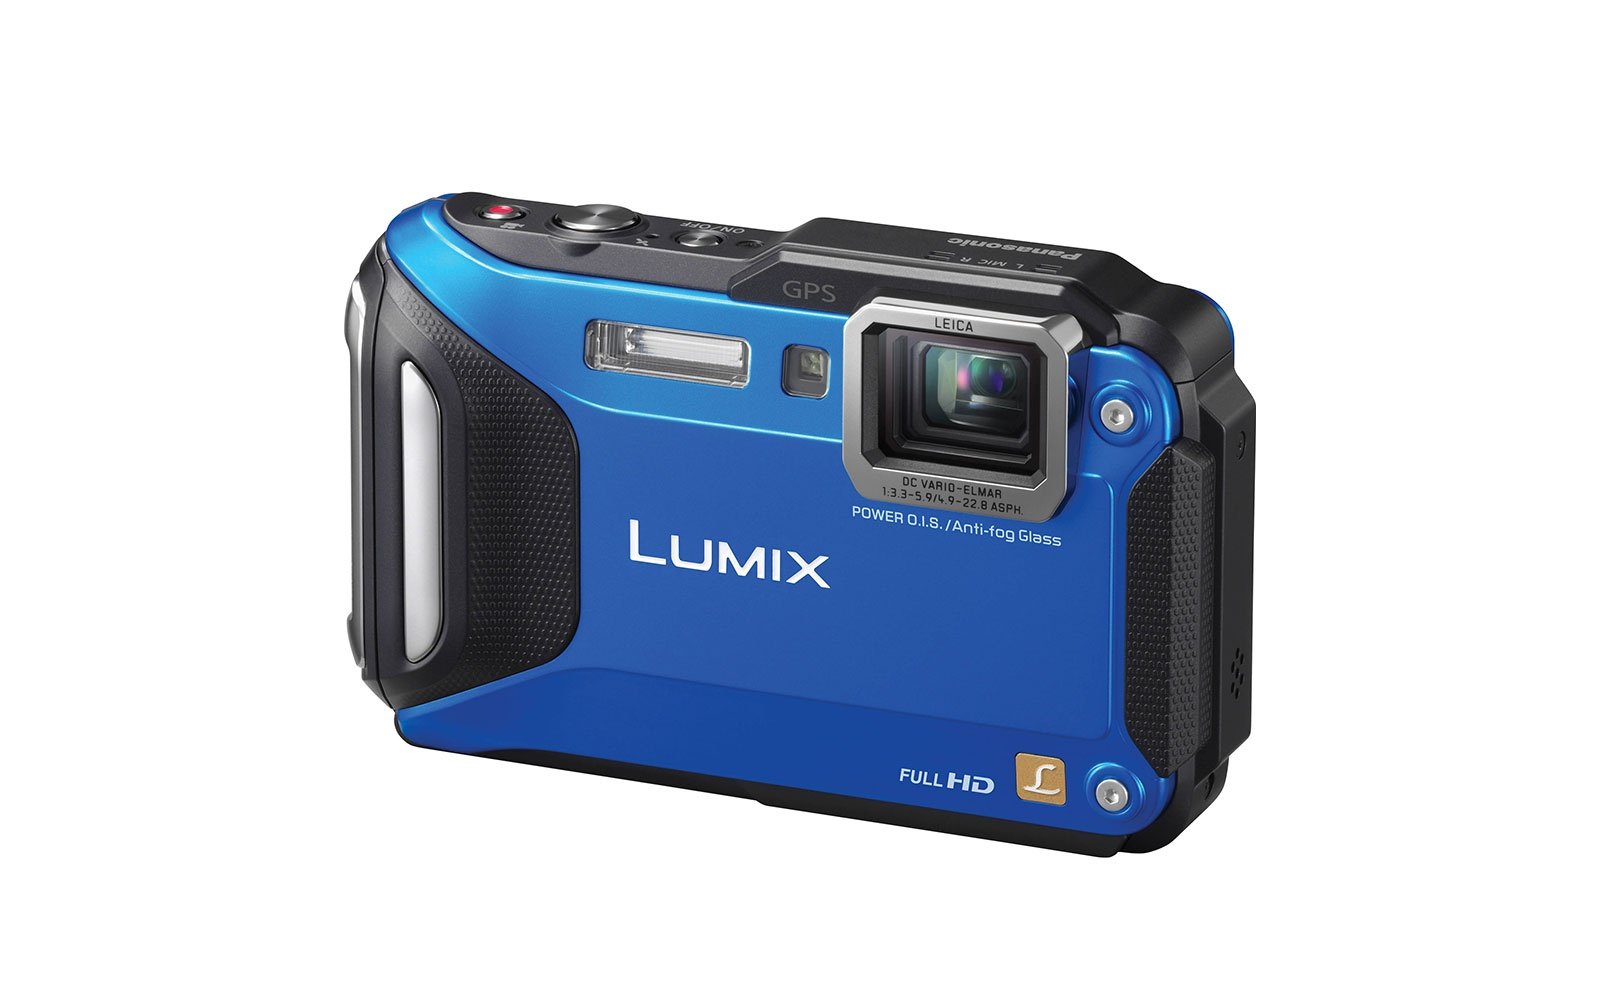 Panasonic Lumix TS6 waterproof digital camera